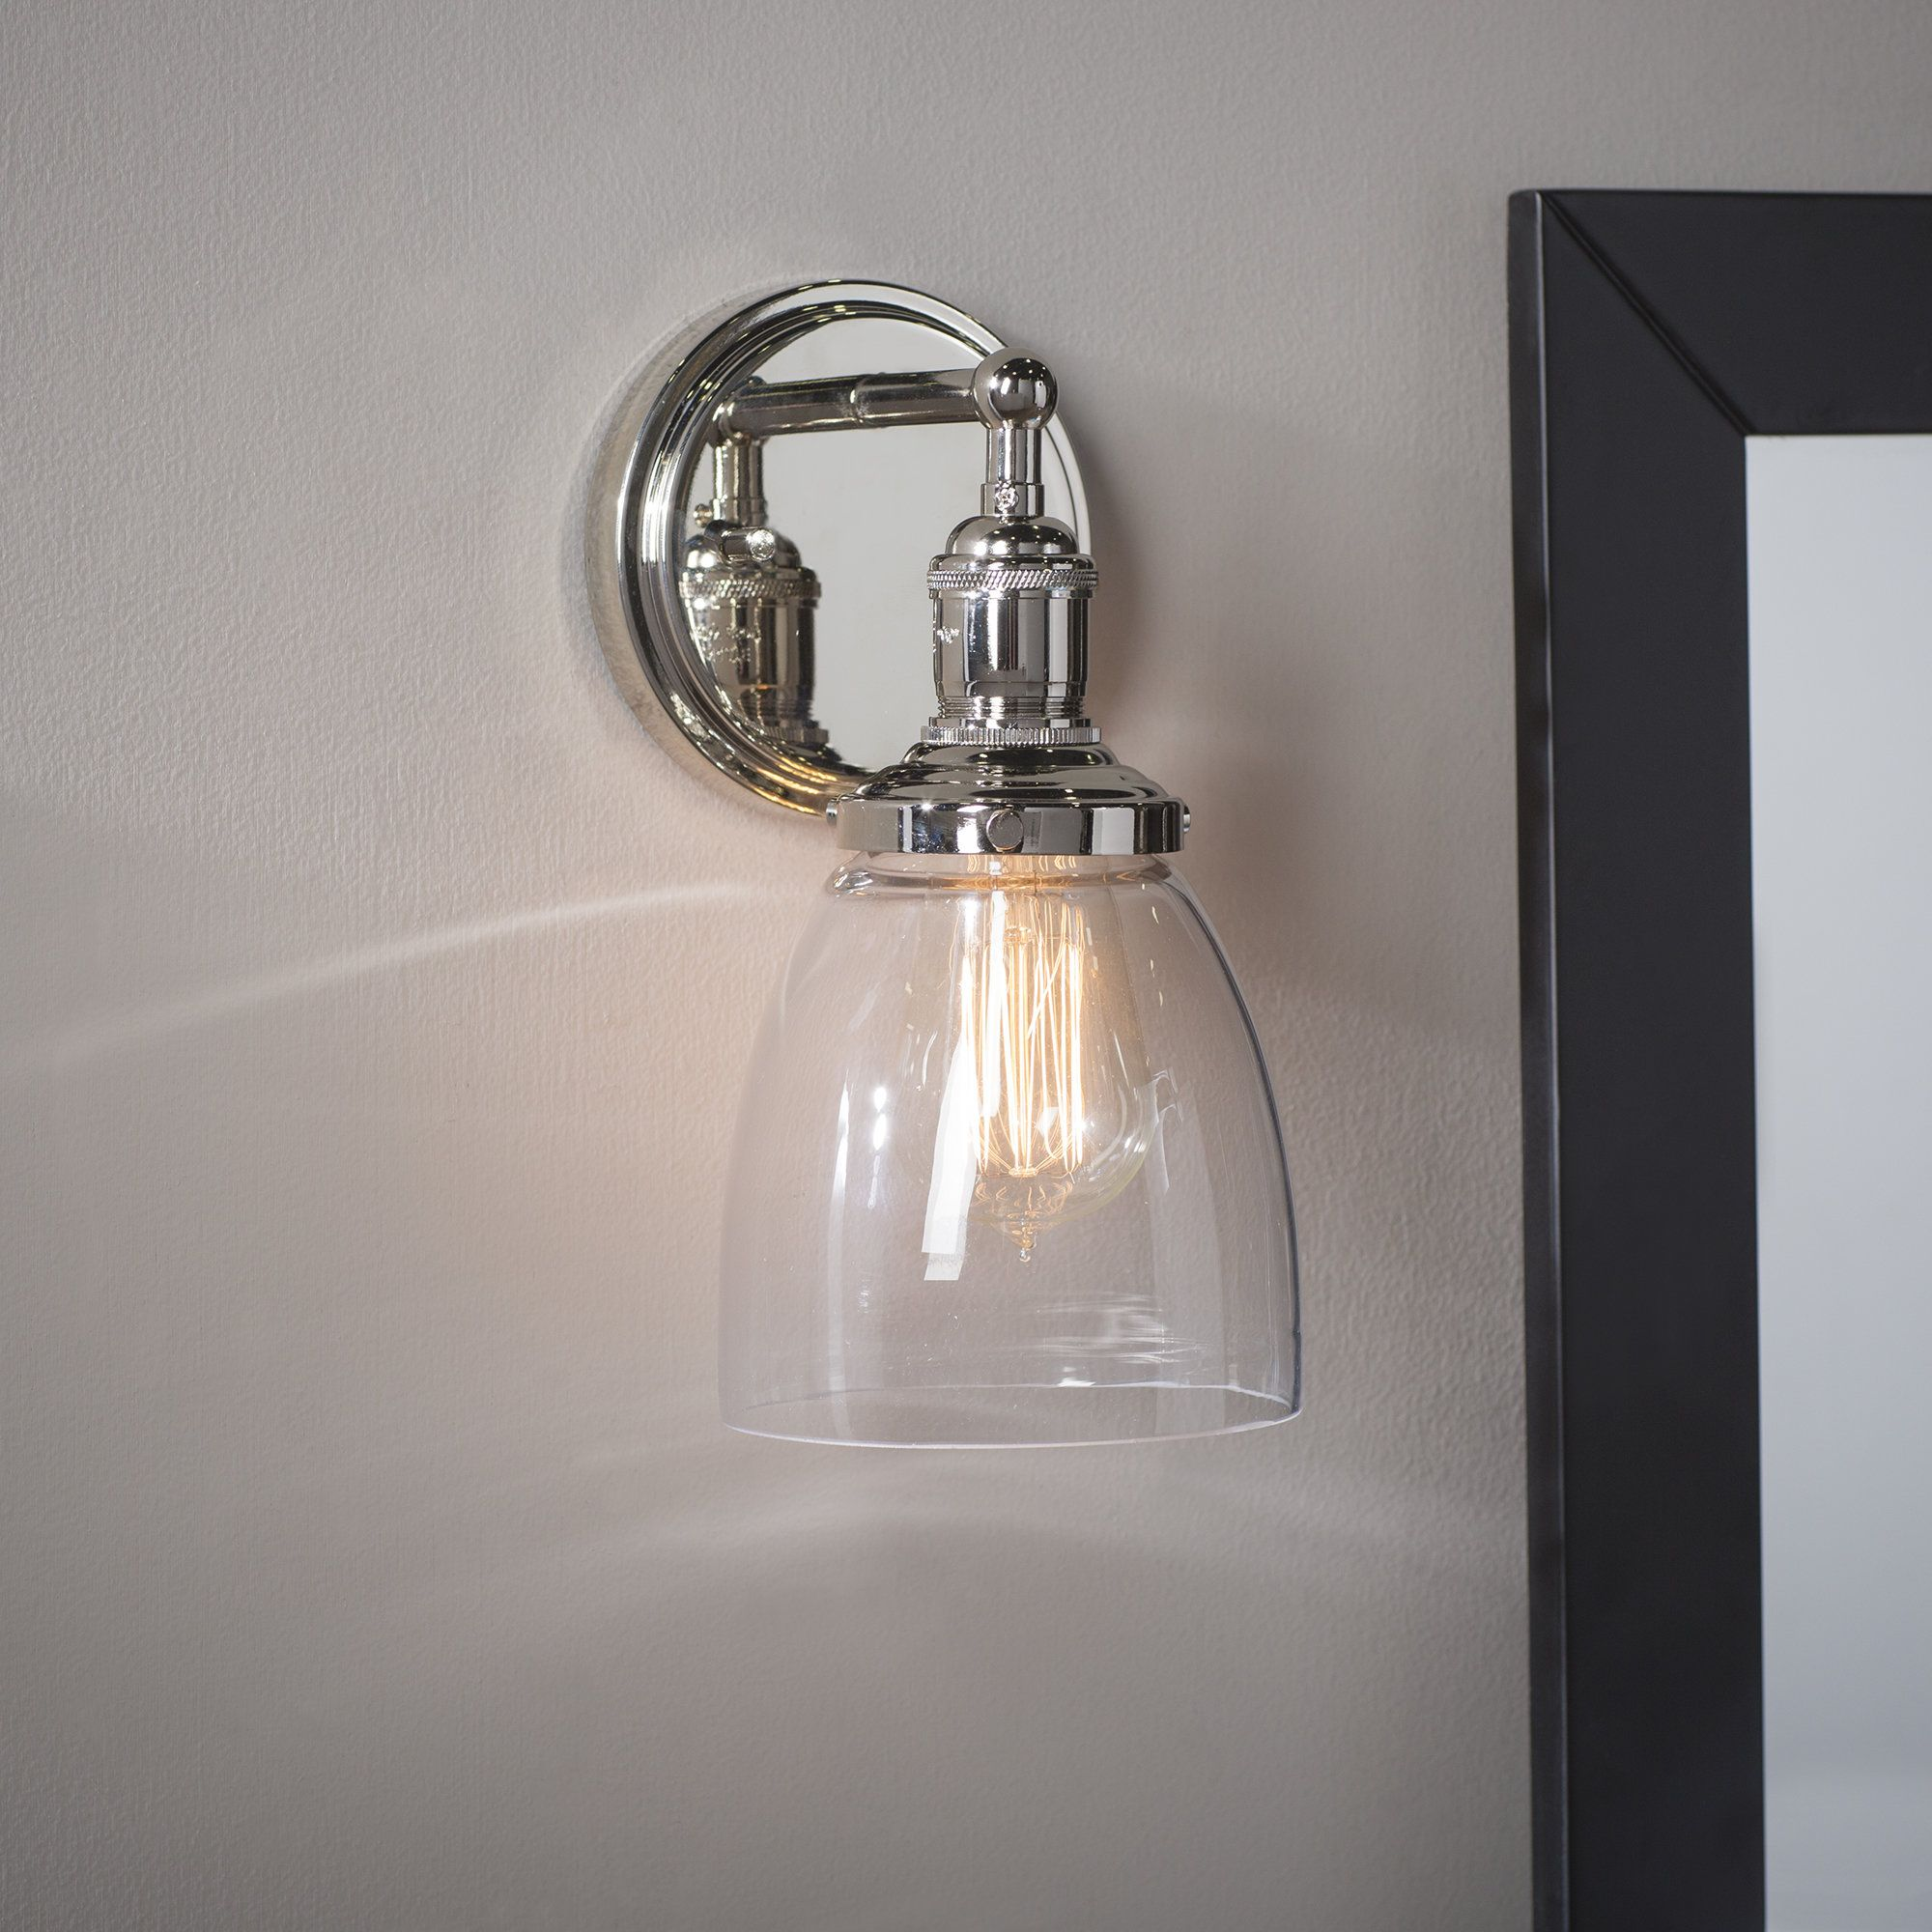 lighting design l fanciful sconce modern awesome wall bathroom